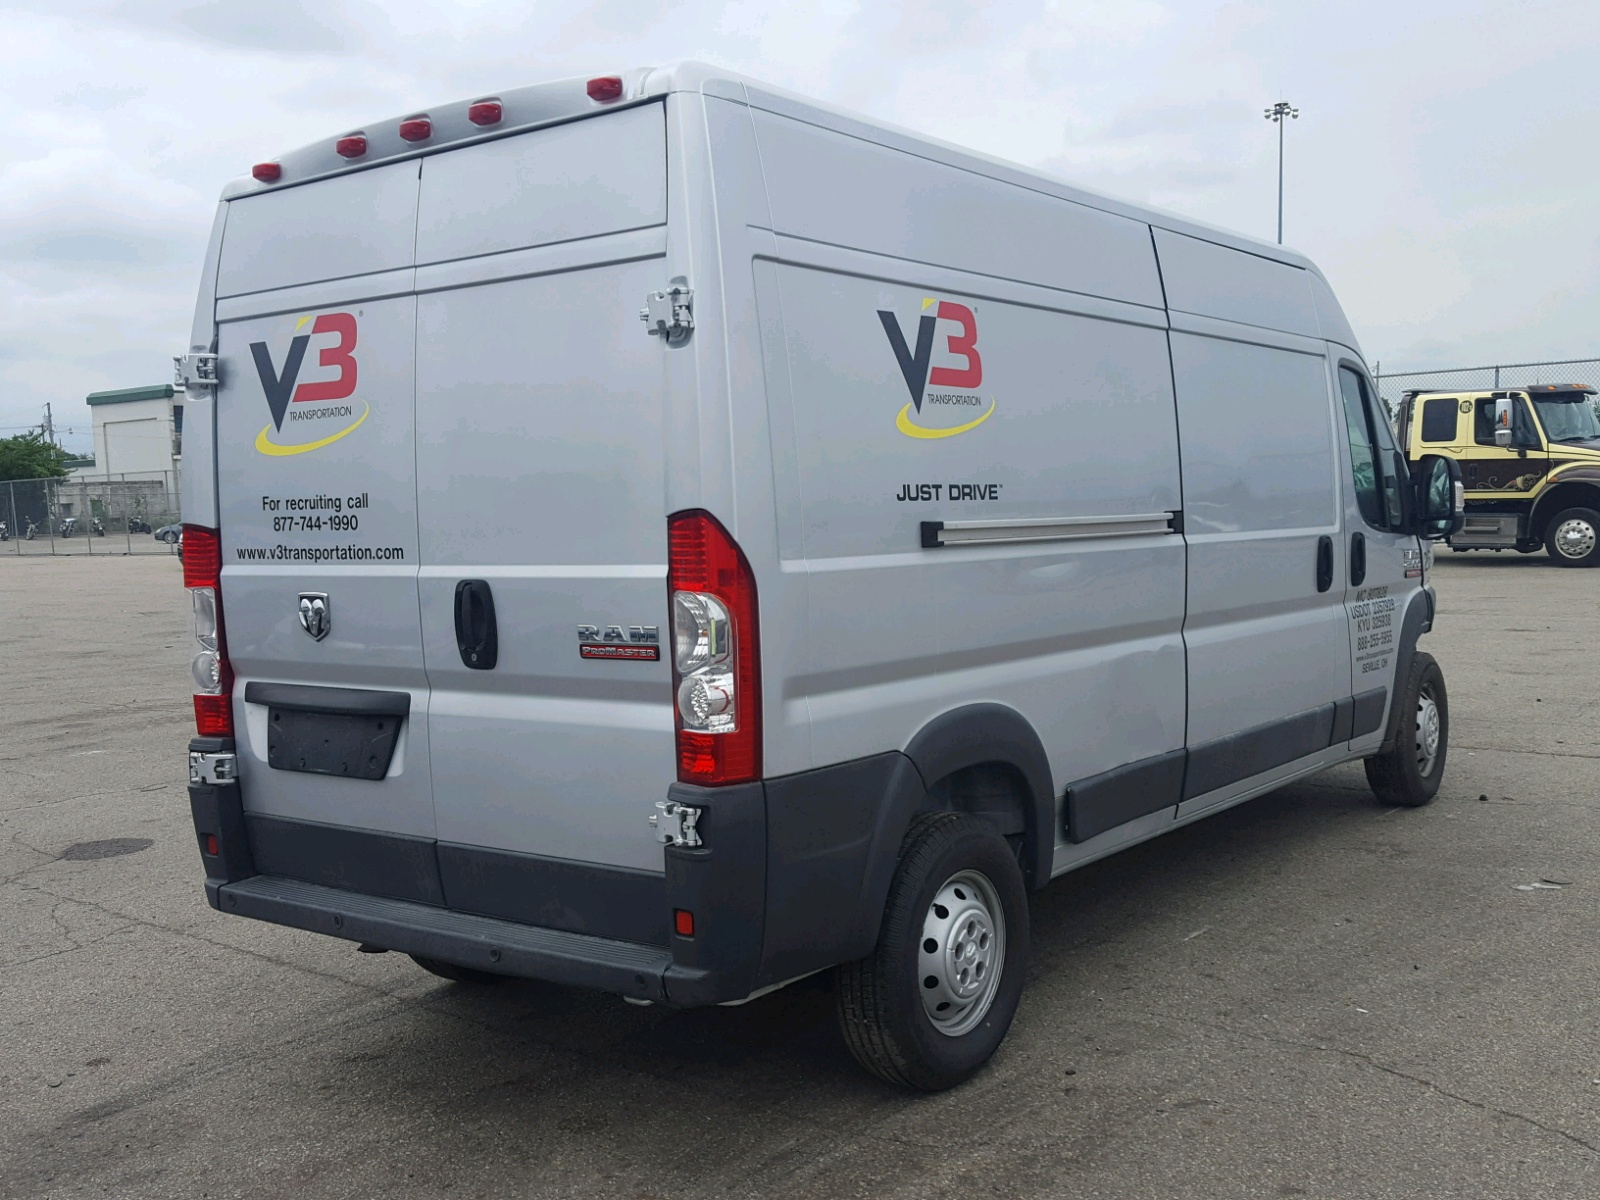 2014 Dodge Ram Promaster For Sale At Copart Moraine Oh Lot 45396718 Van